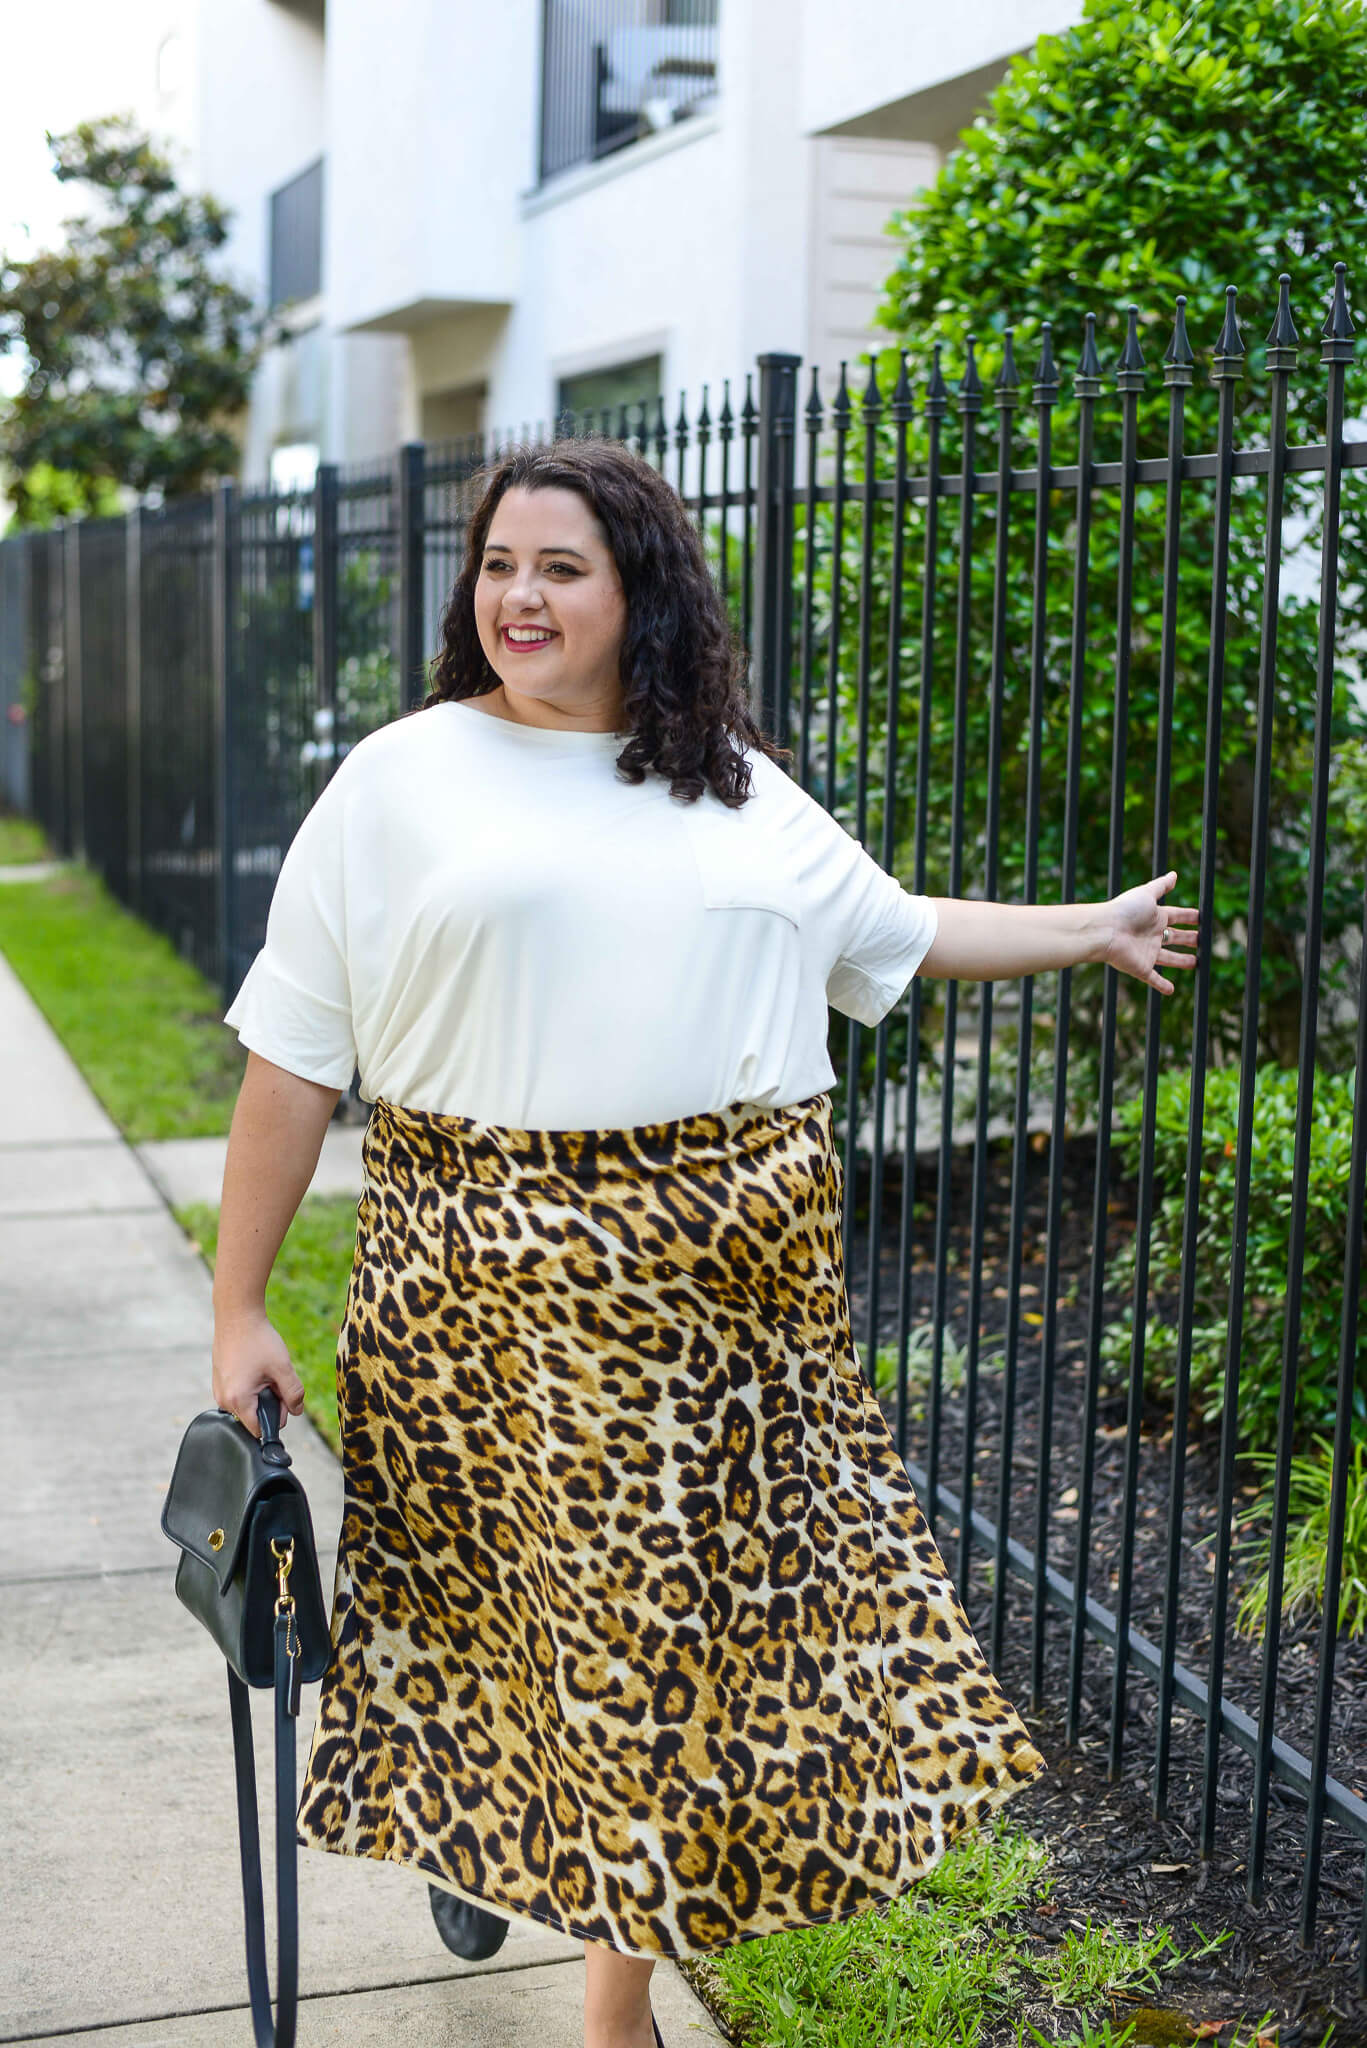 Leopard skirt from Common Assembly